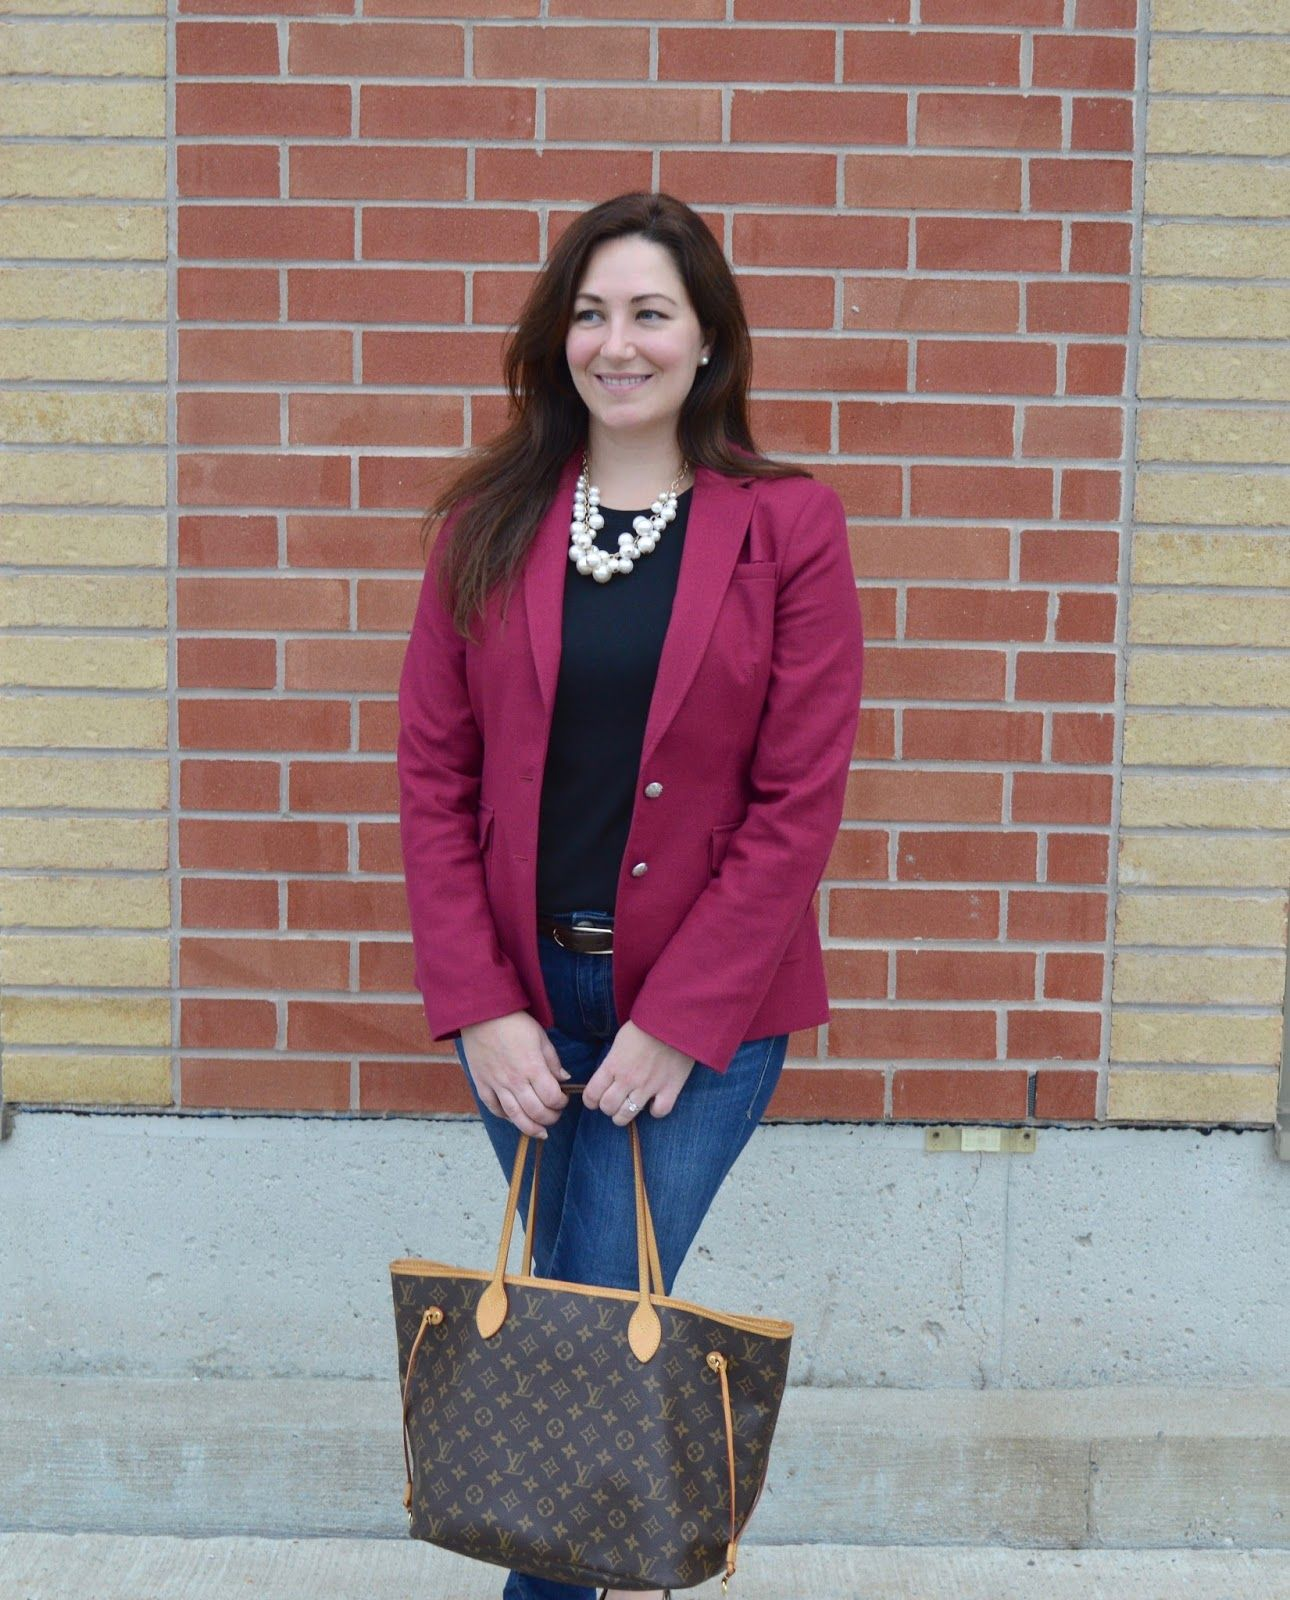 Pink blazer, pearls and Louis Vuitton